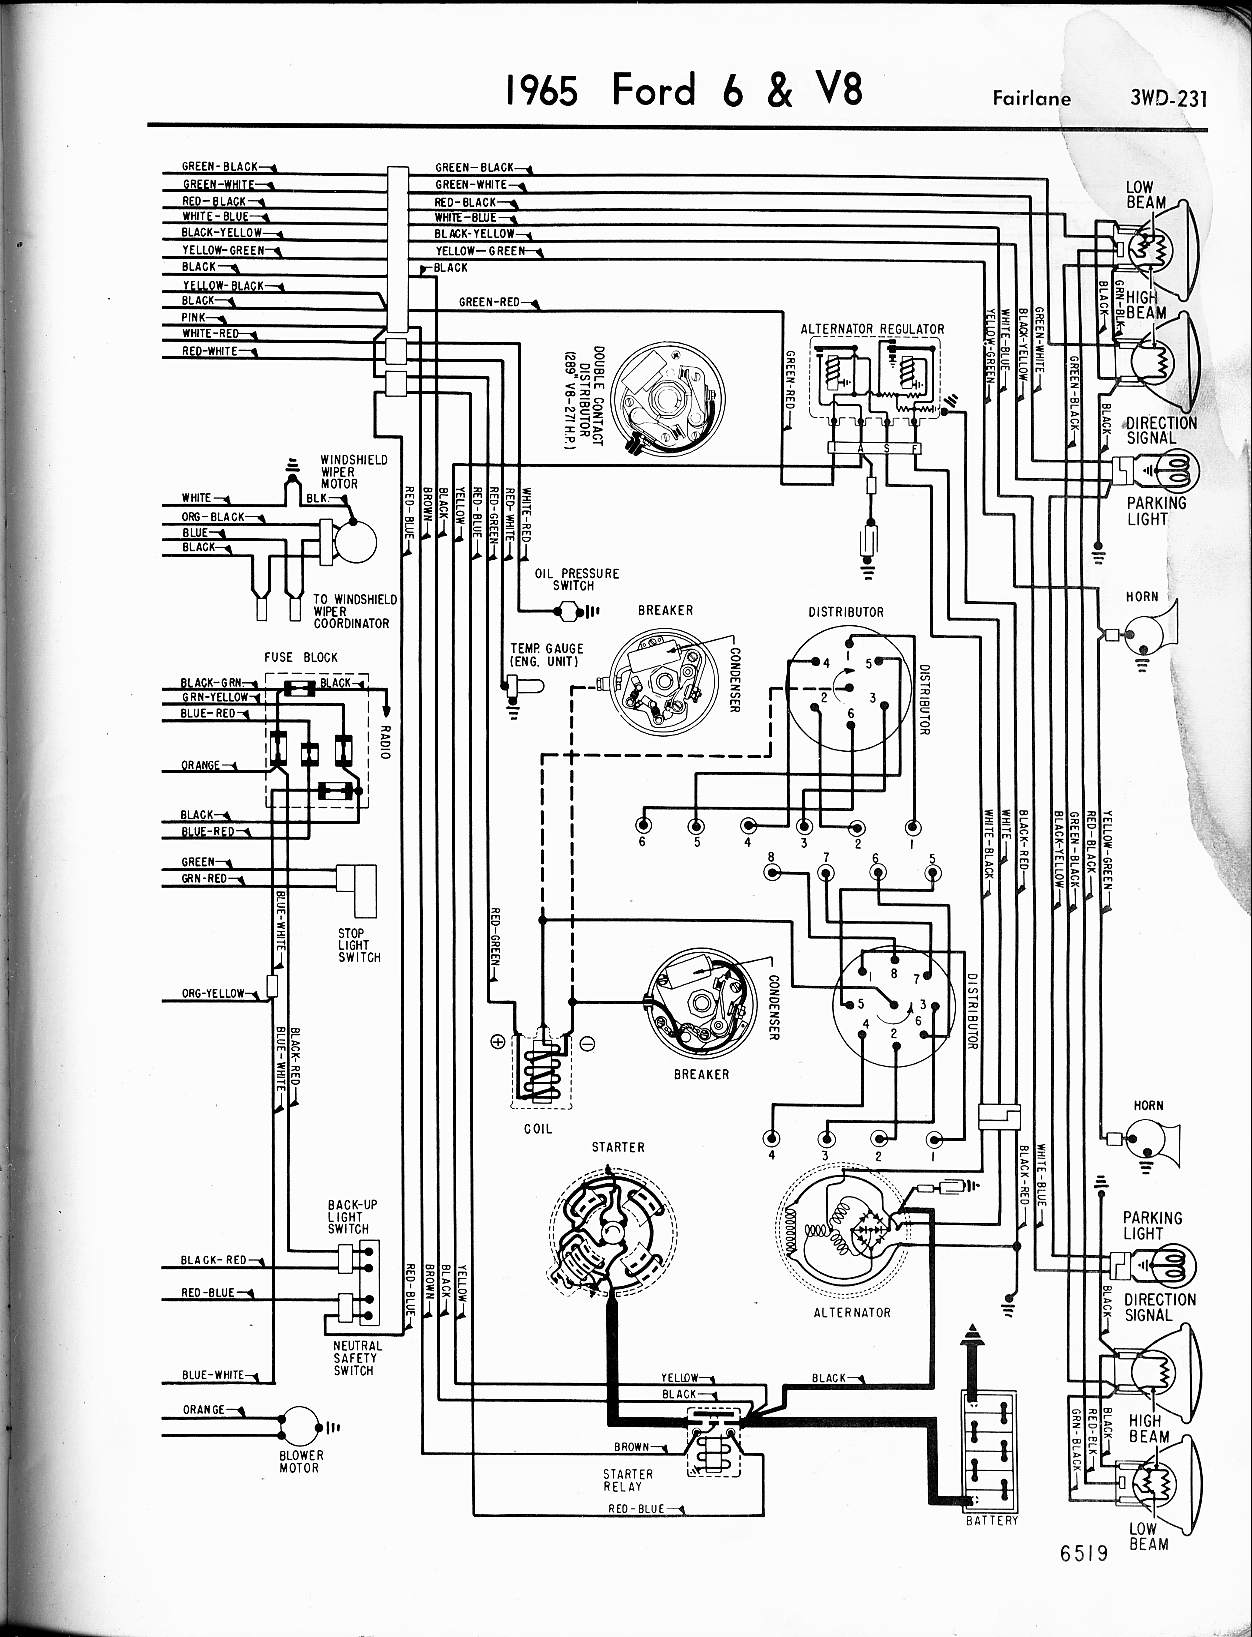 Geo Metro Ignition Switch Wiring Diagram on 1966 ford mustang alternator wiring diagram moreover 1968